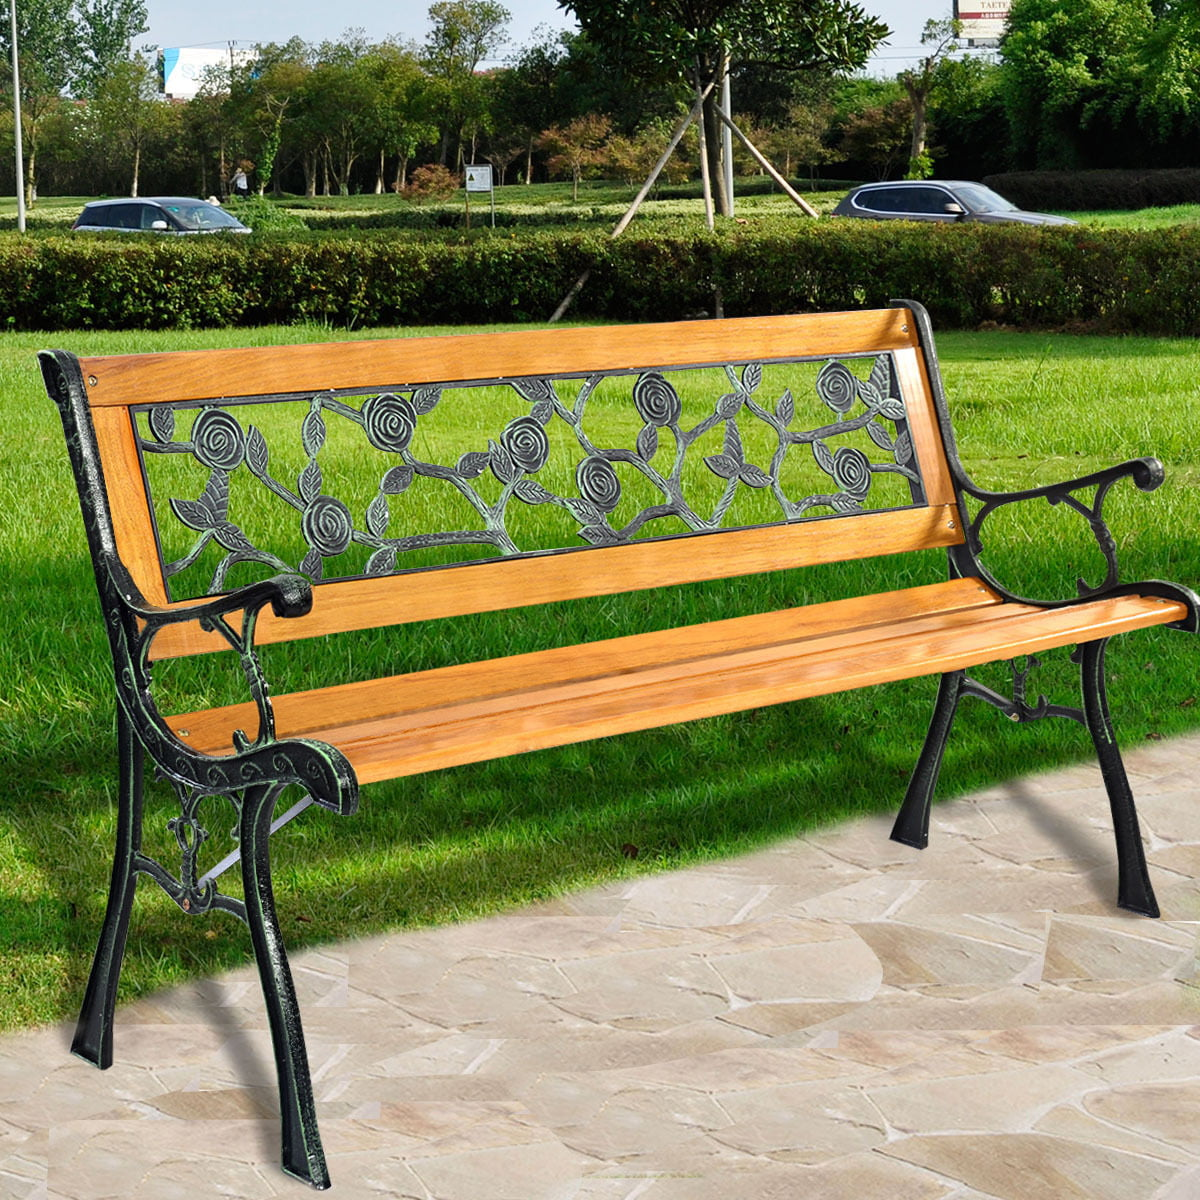 Costway Patio Park Garden Bench Porch Chair Outdoor Deck